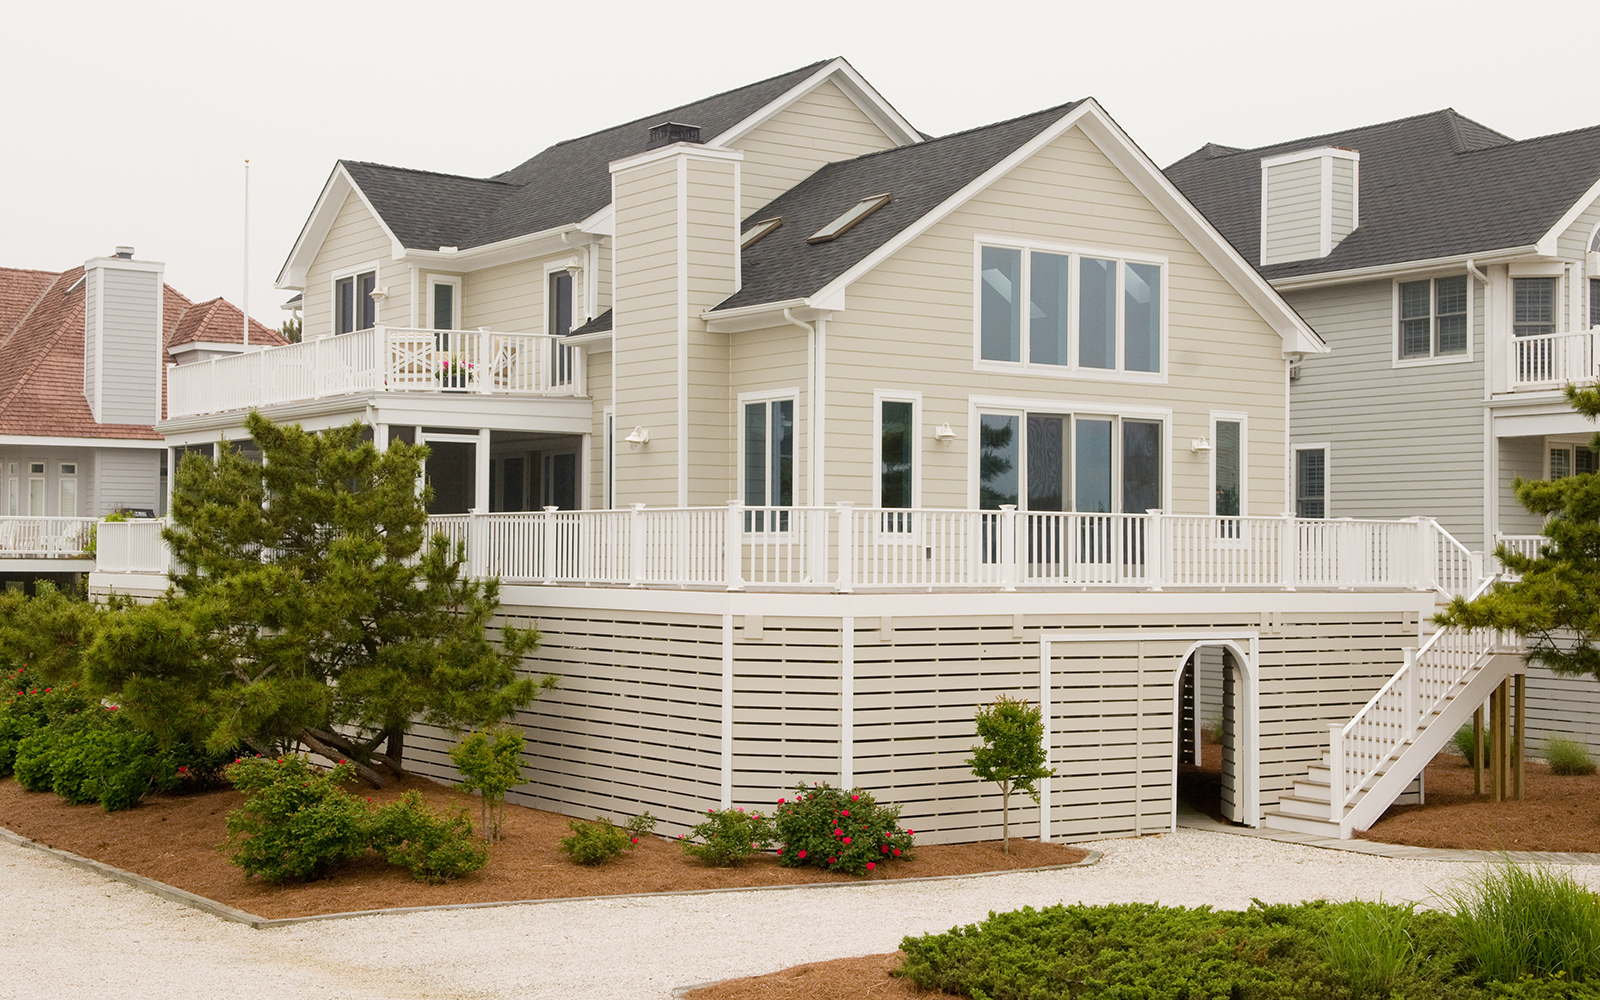 Exterior Of The Burns Beach House In Bethany By Designer Erica